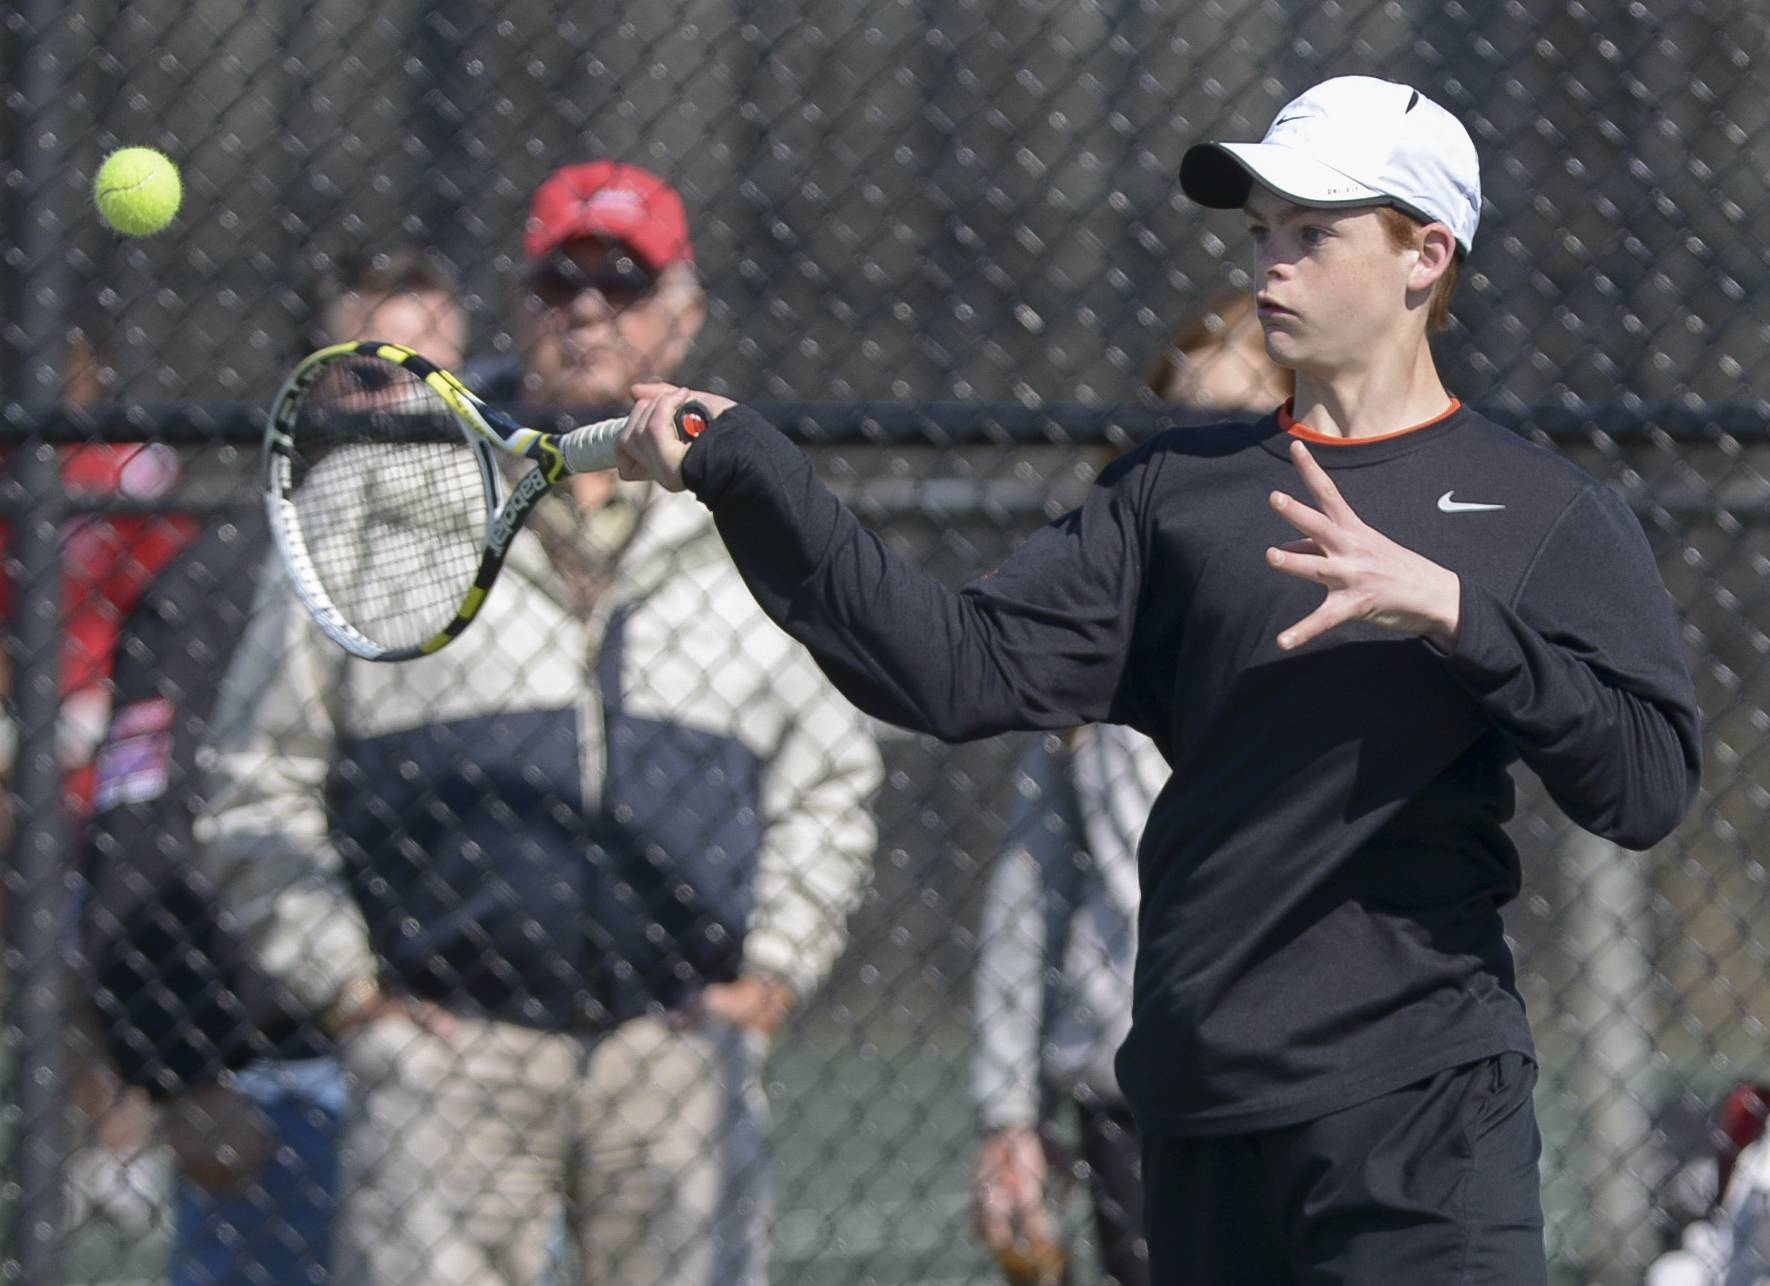 Wheaton Warrenville South's Charlie McDonough completes against Glenbard East's Nathan Delawder during the Glenbard West boys tennis invitational.